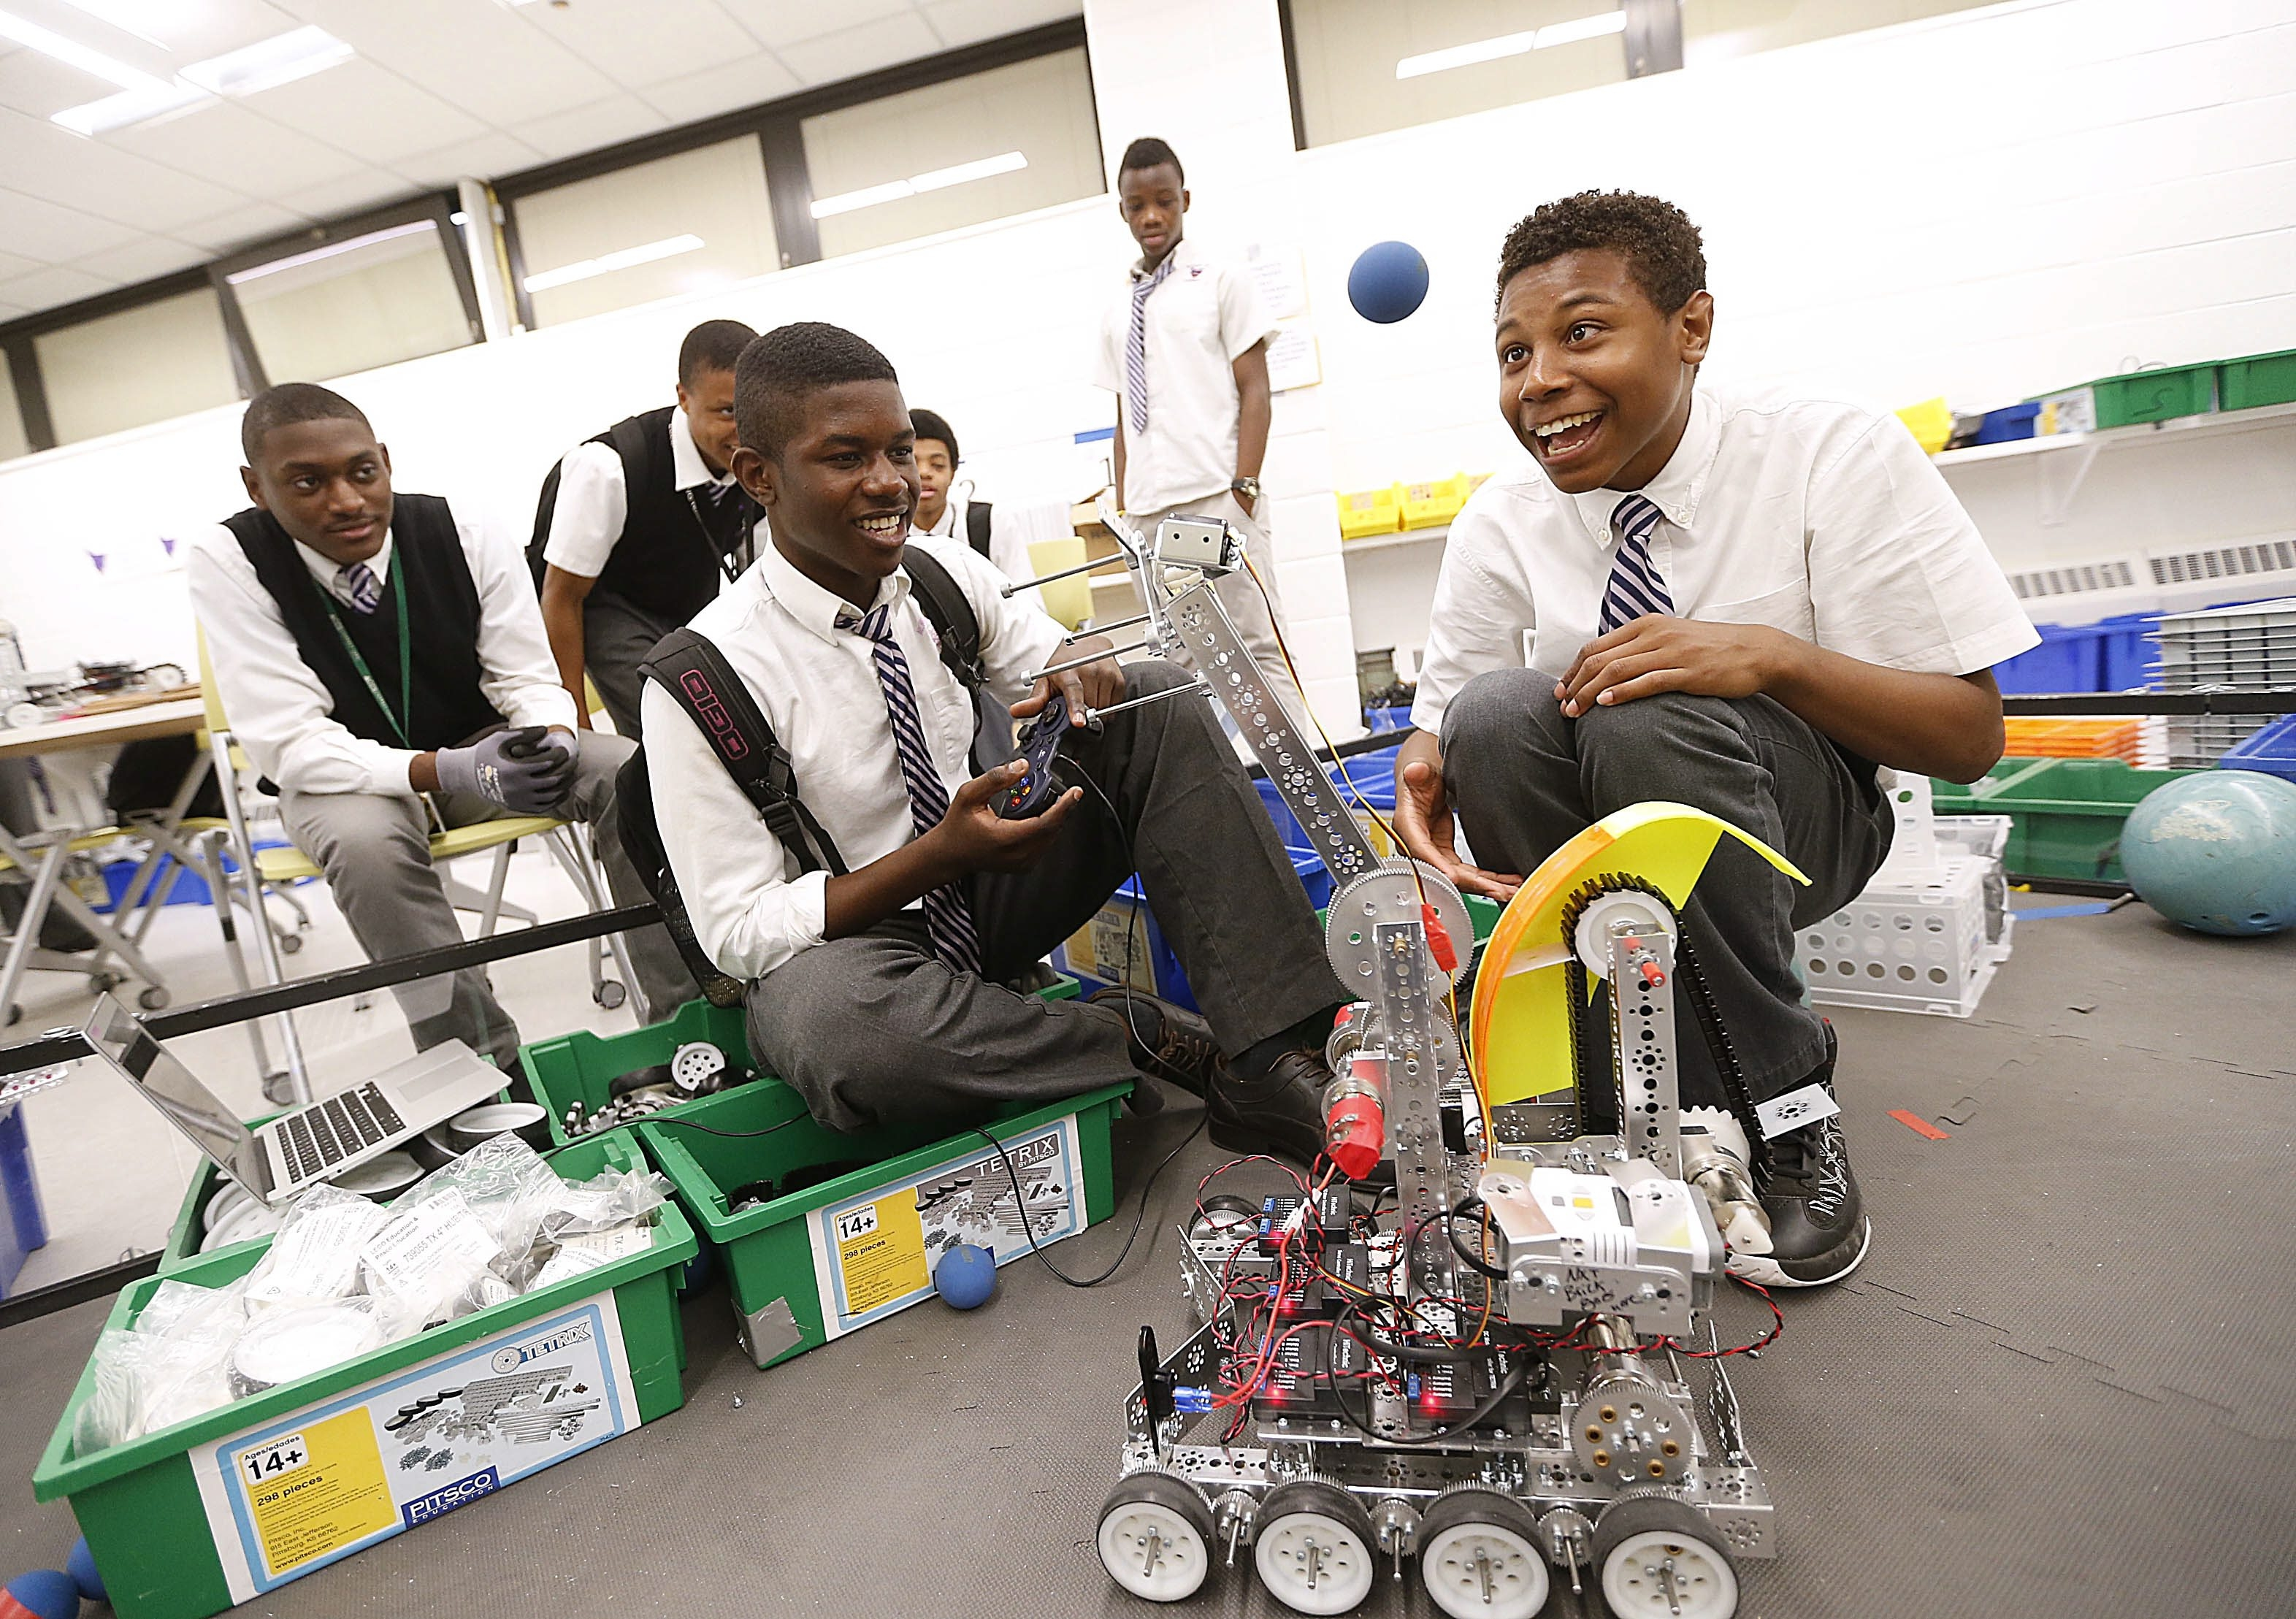 At top, 10th-graders Sendes Dhaiti, Daniel Dumbard and Duvonne Frails build a robot in one of the career programs at Newark Tech High School. Elsewhere in the district, students create music videos, bottom left, and work on a calculus assignment, right. The projects reflect the variety of career offerings in the district.